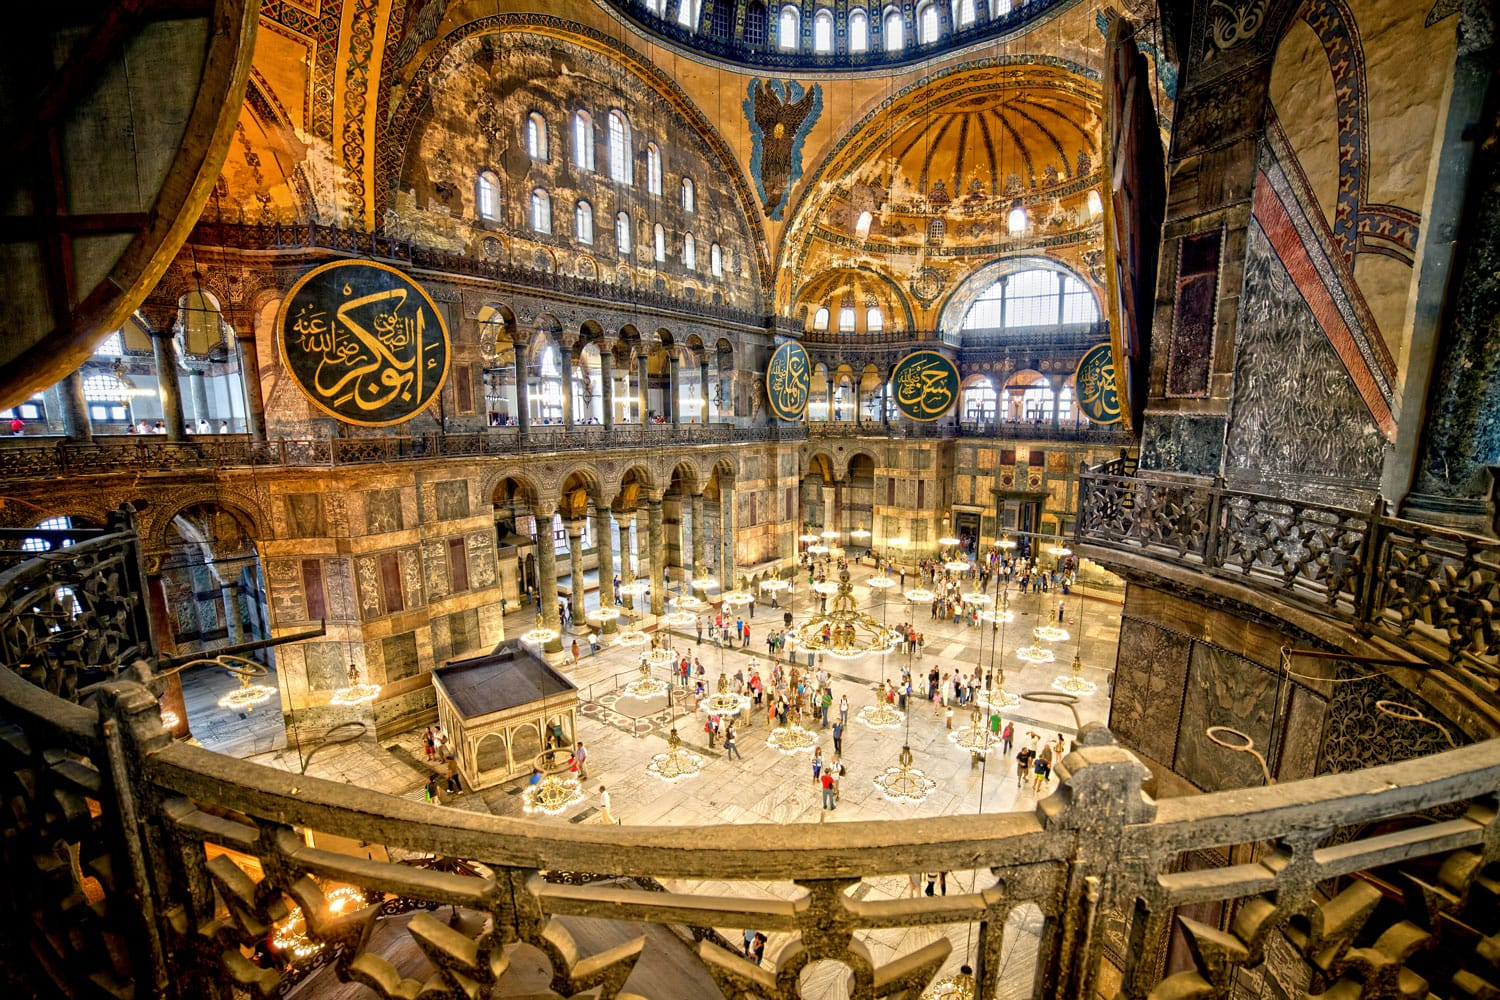 Interior view of the Hagia Sophia in Istanbul, Turkey